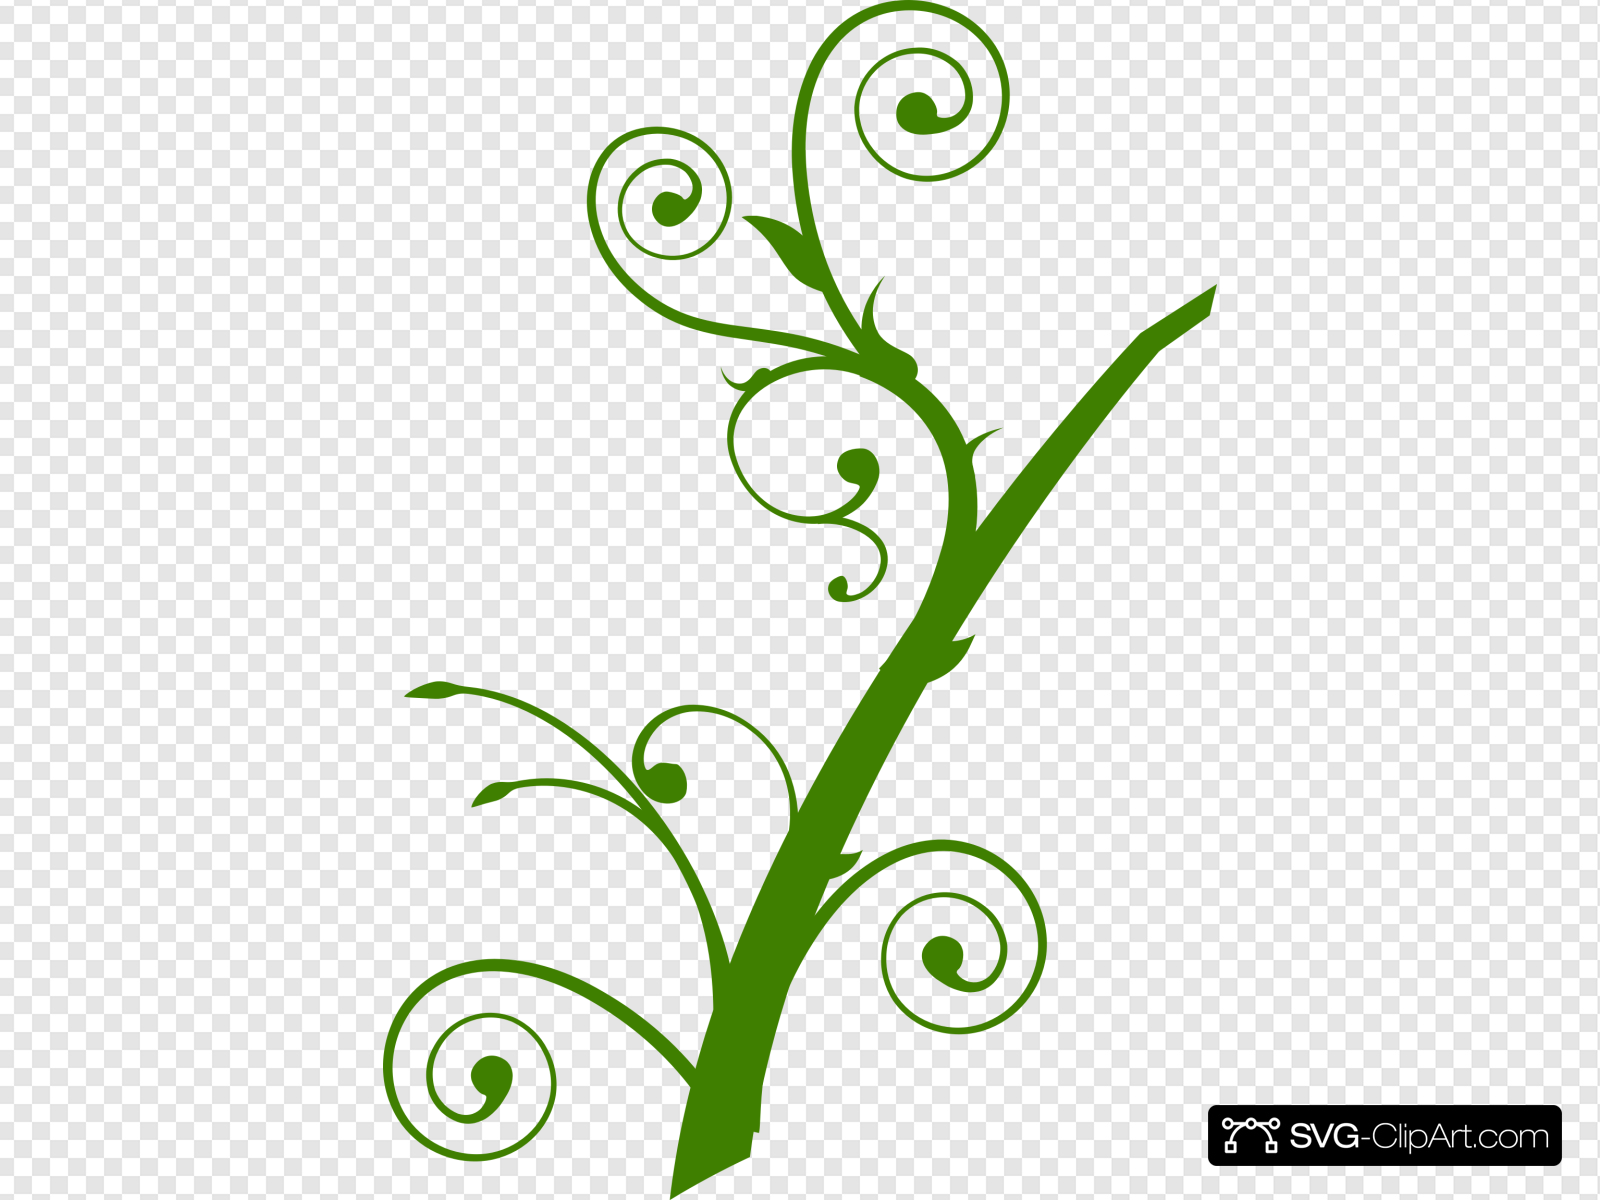 Green Branch Leaves Clip art, Icon and SVG.